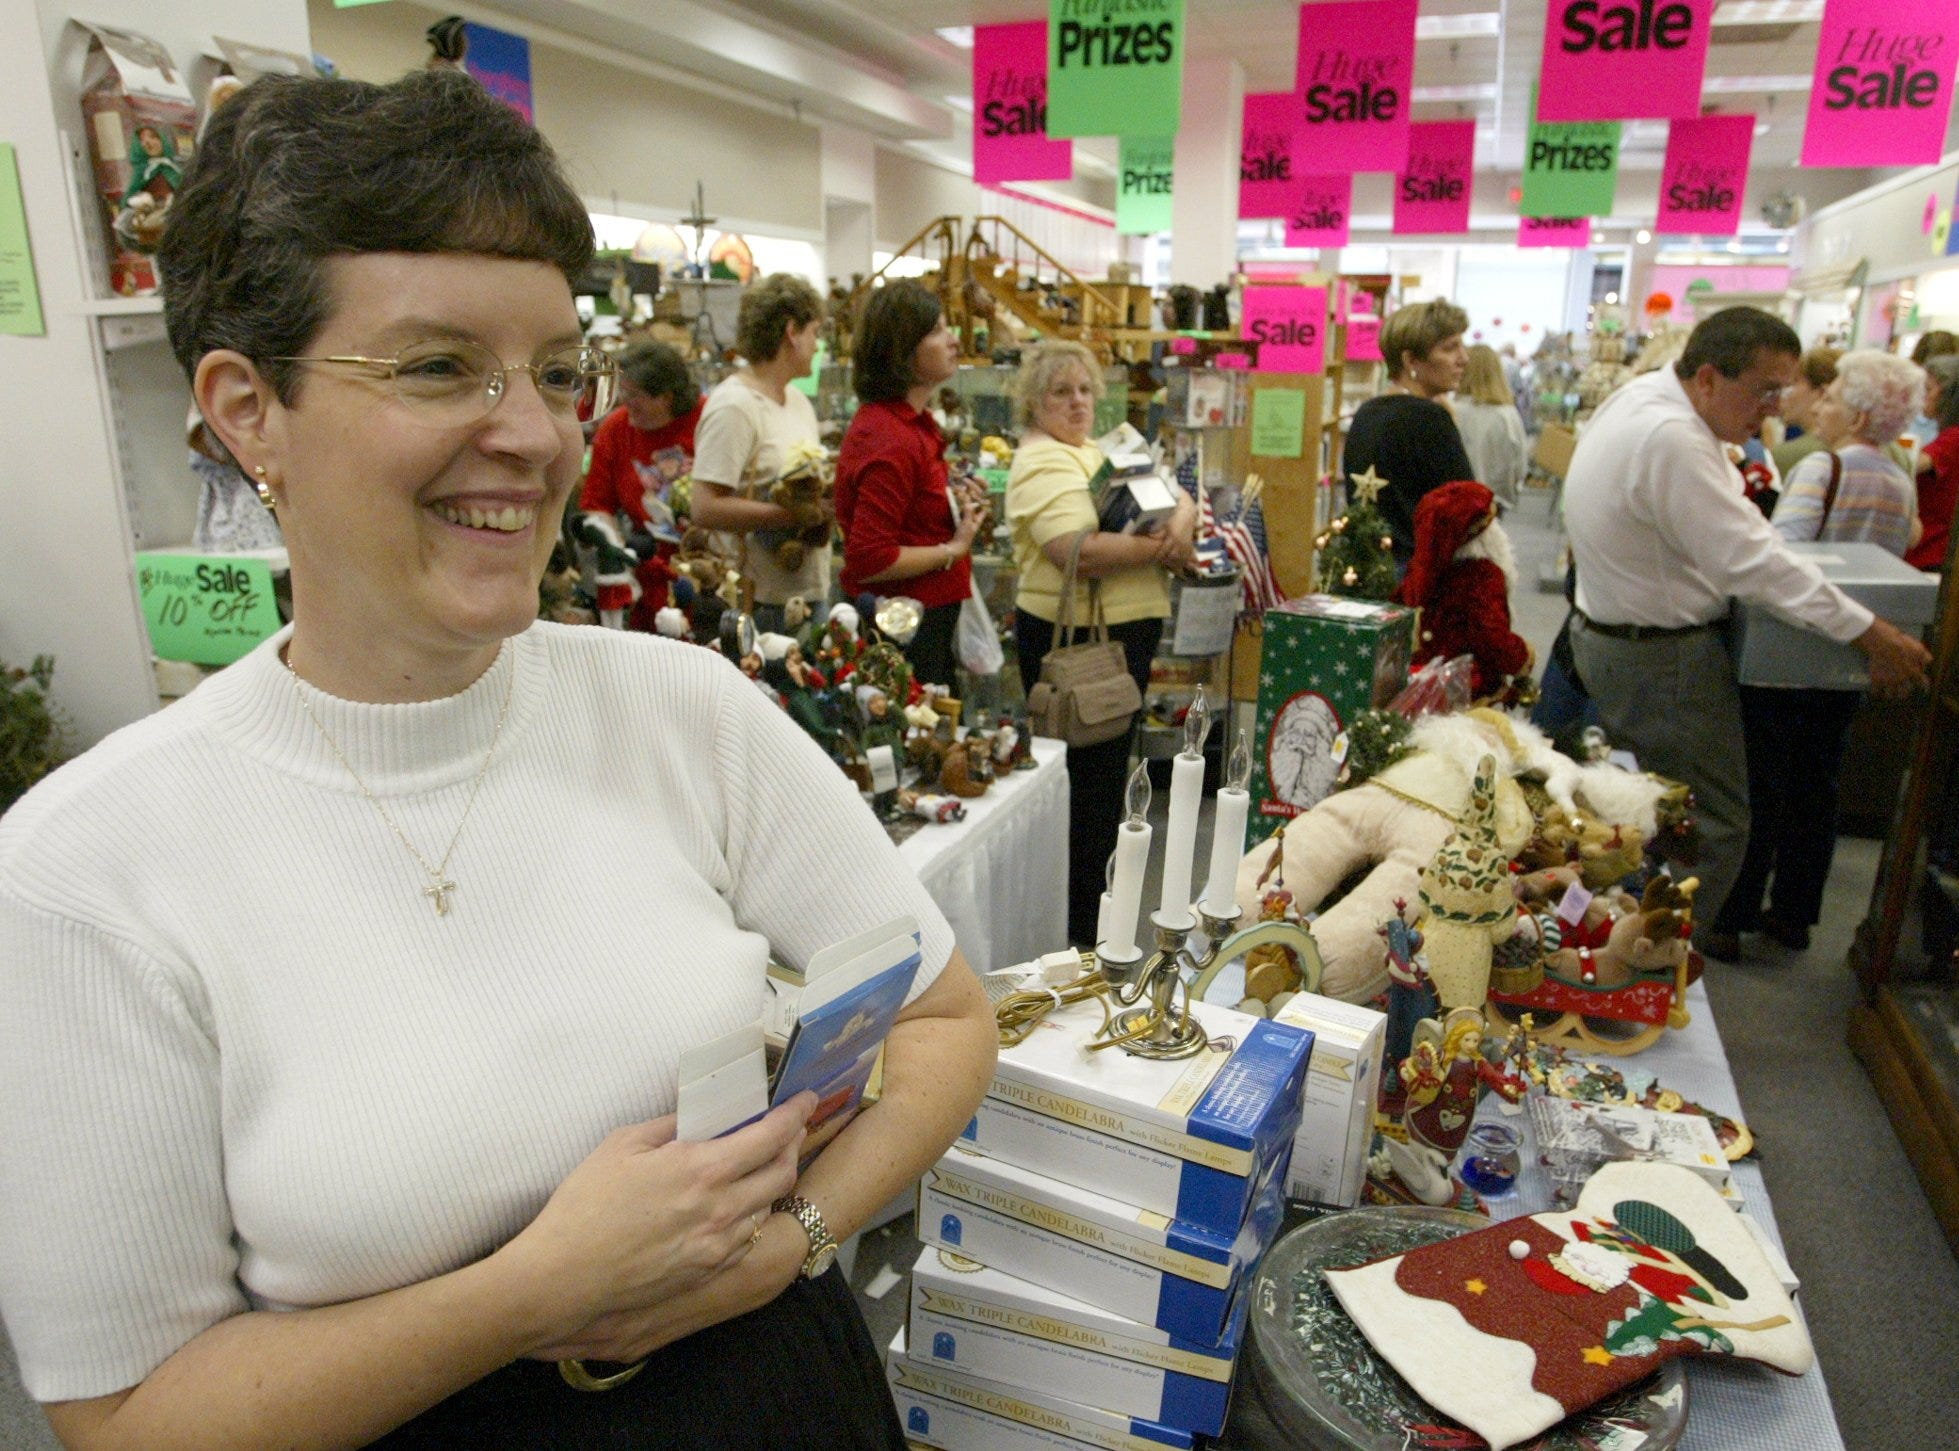 Ellen Harrison, who owns Brodericks Gifts and Collectibles with her husband, Russ, stands in the store July 10, 2003, as shoppers wait in line to purchase their marked-down goods. The Harrisons expect to close the Valley West Mall store in mid-September.